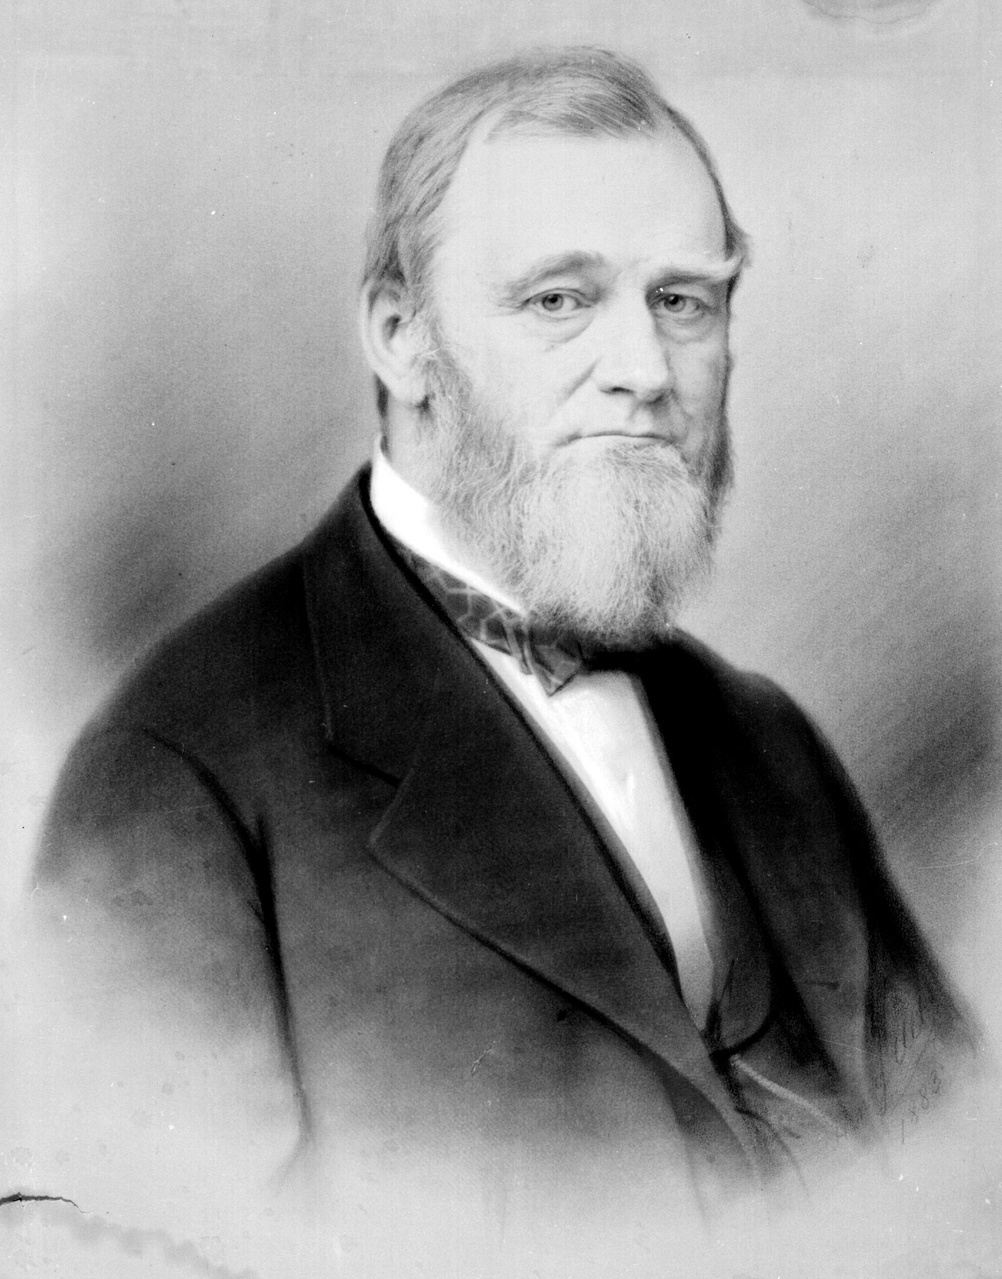 Portrait of Spencer Baird